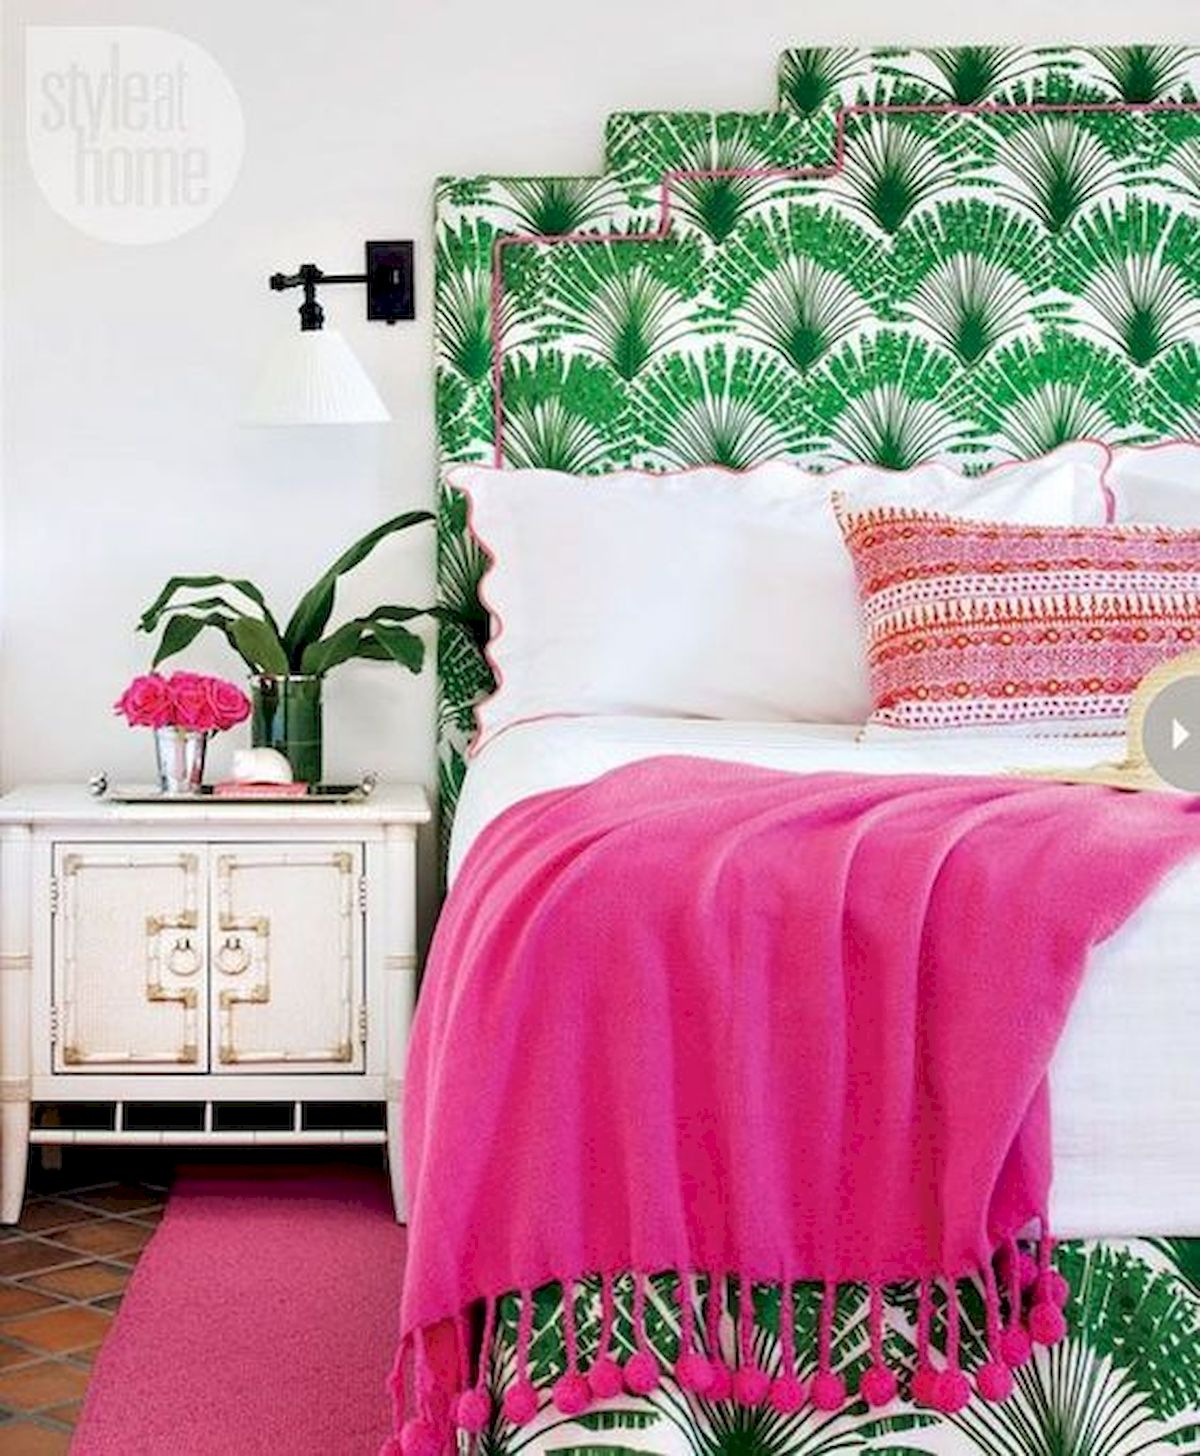 70 Awesome Colorful Bedroom Design Ideas and Remodel (30)